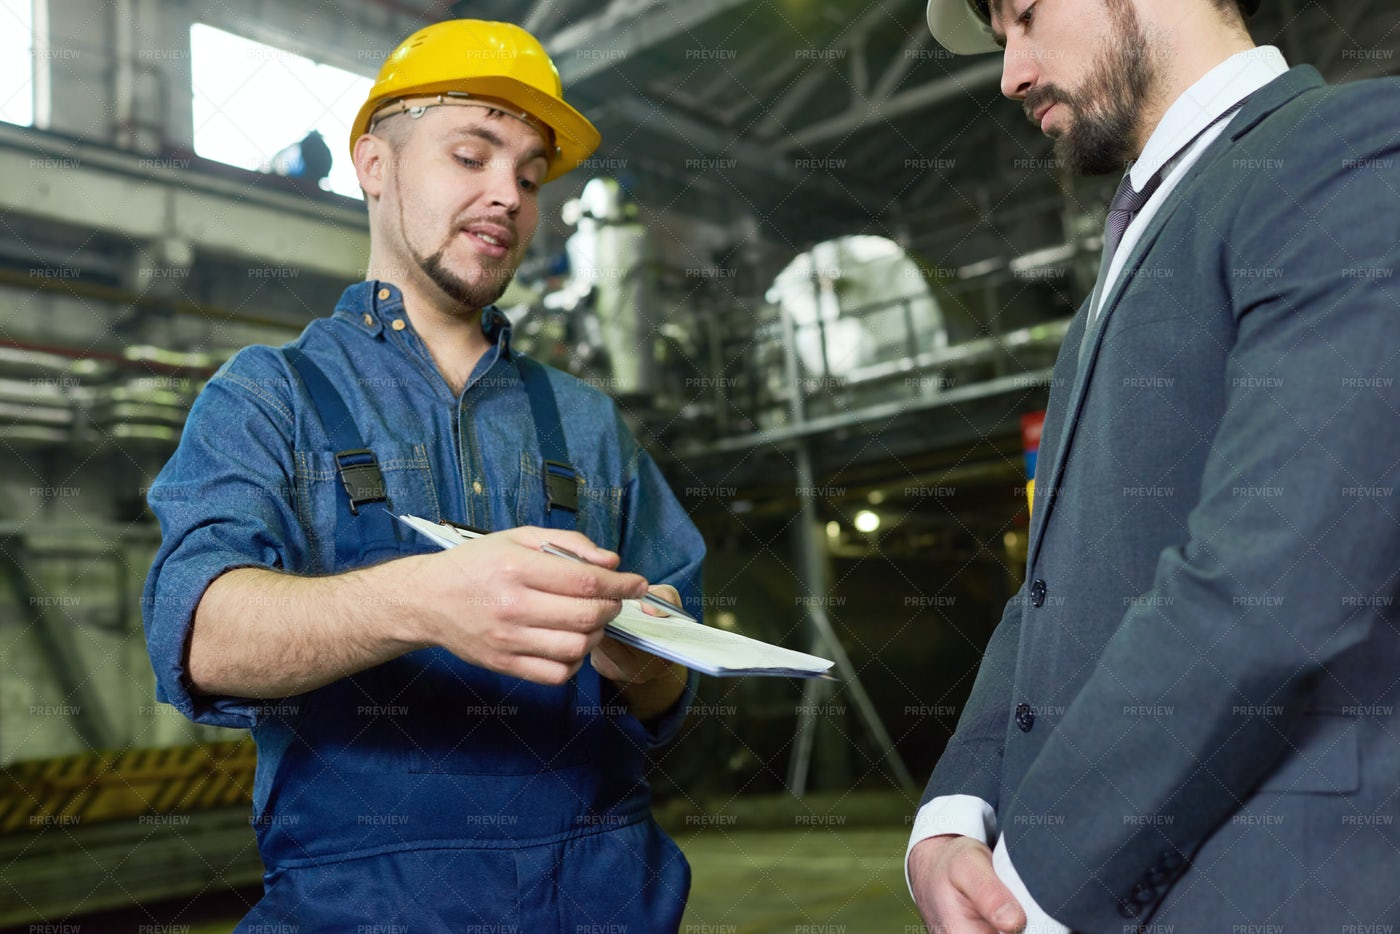 Inspection Passed At Plant: Stock Photos